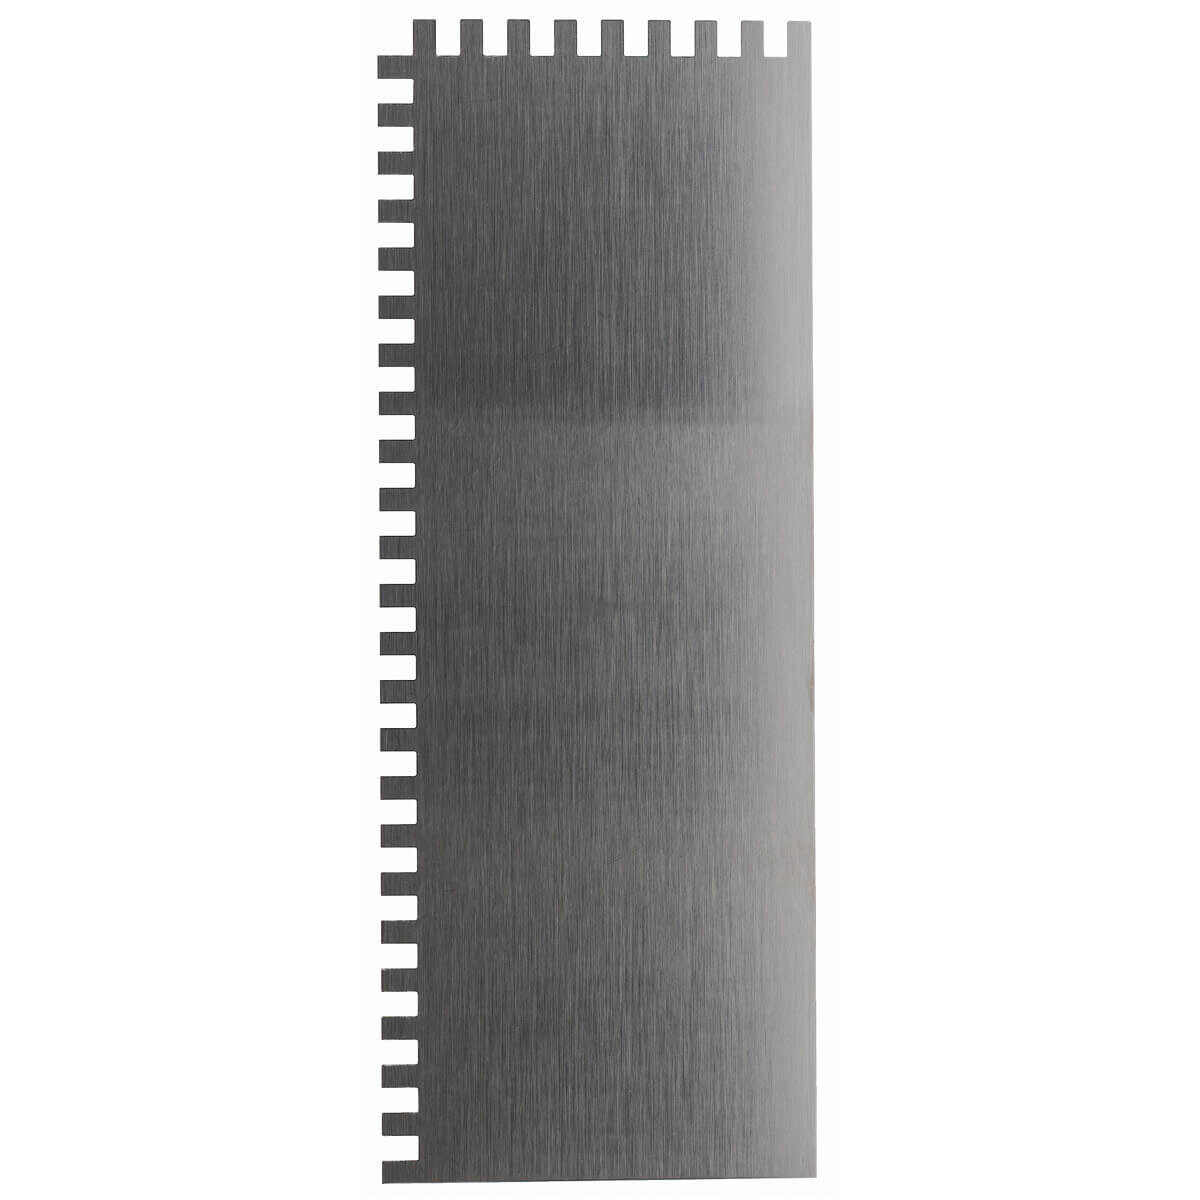 Barwalt Ultralife Square Notched Trowel Blade